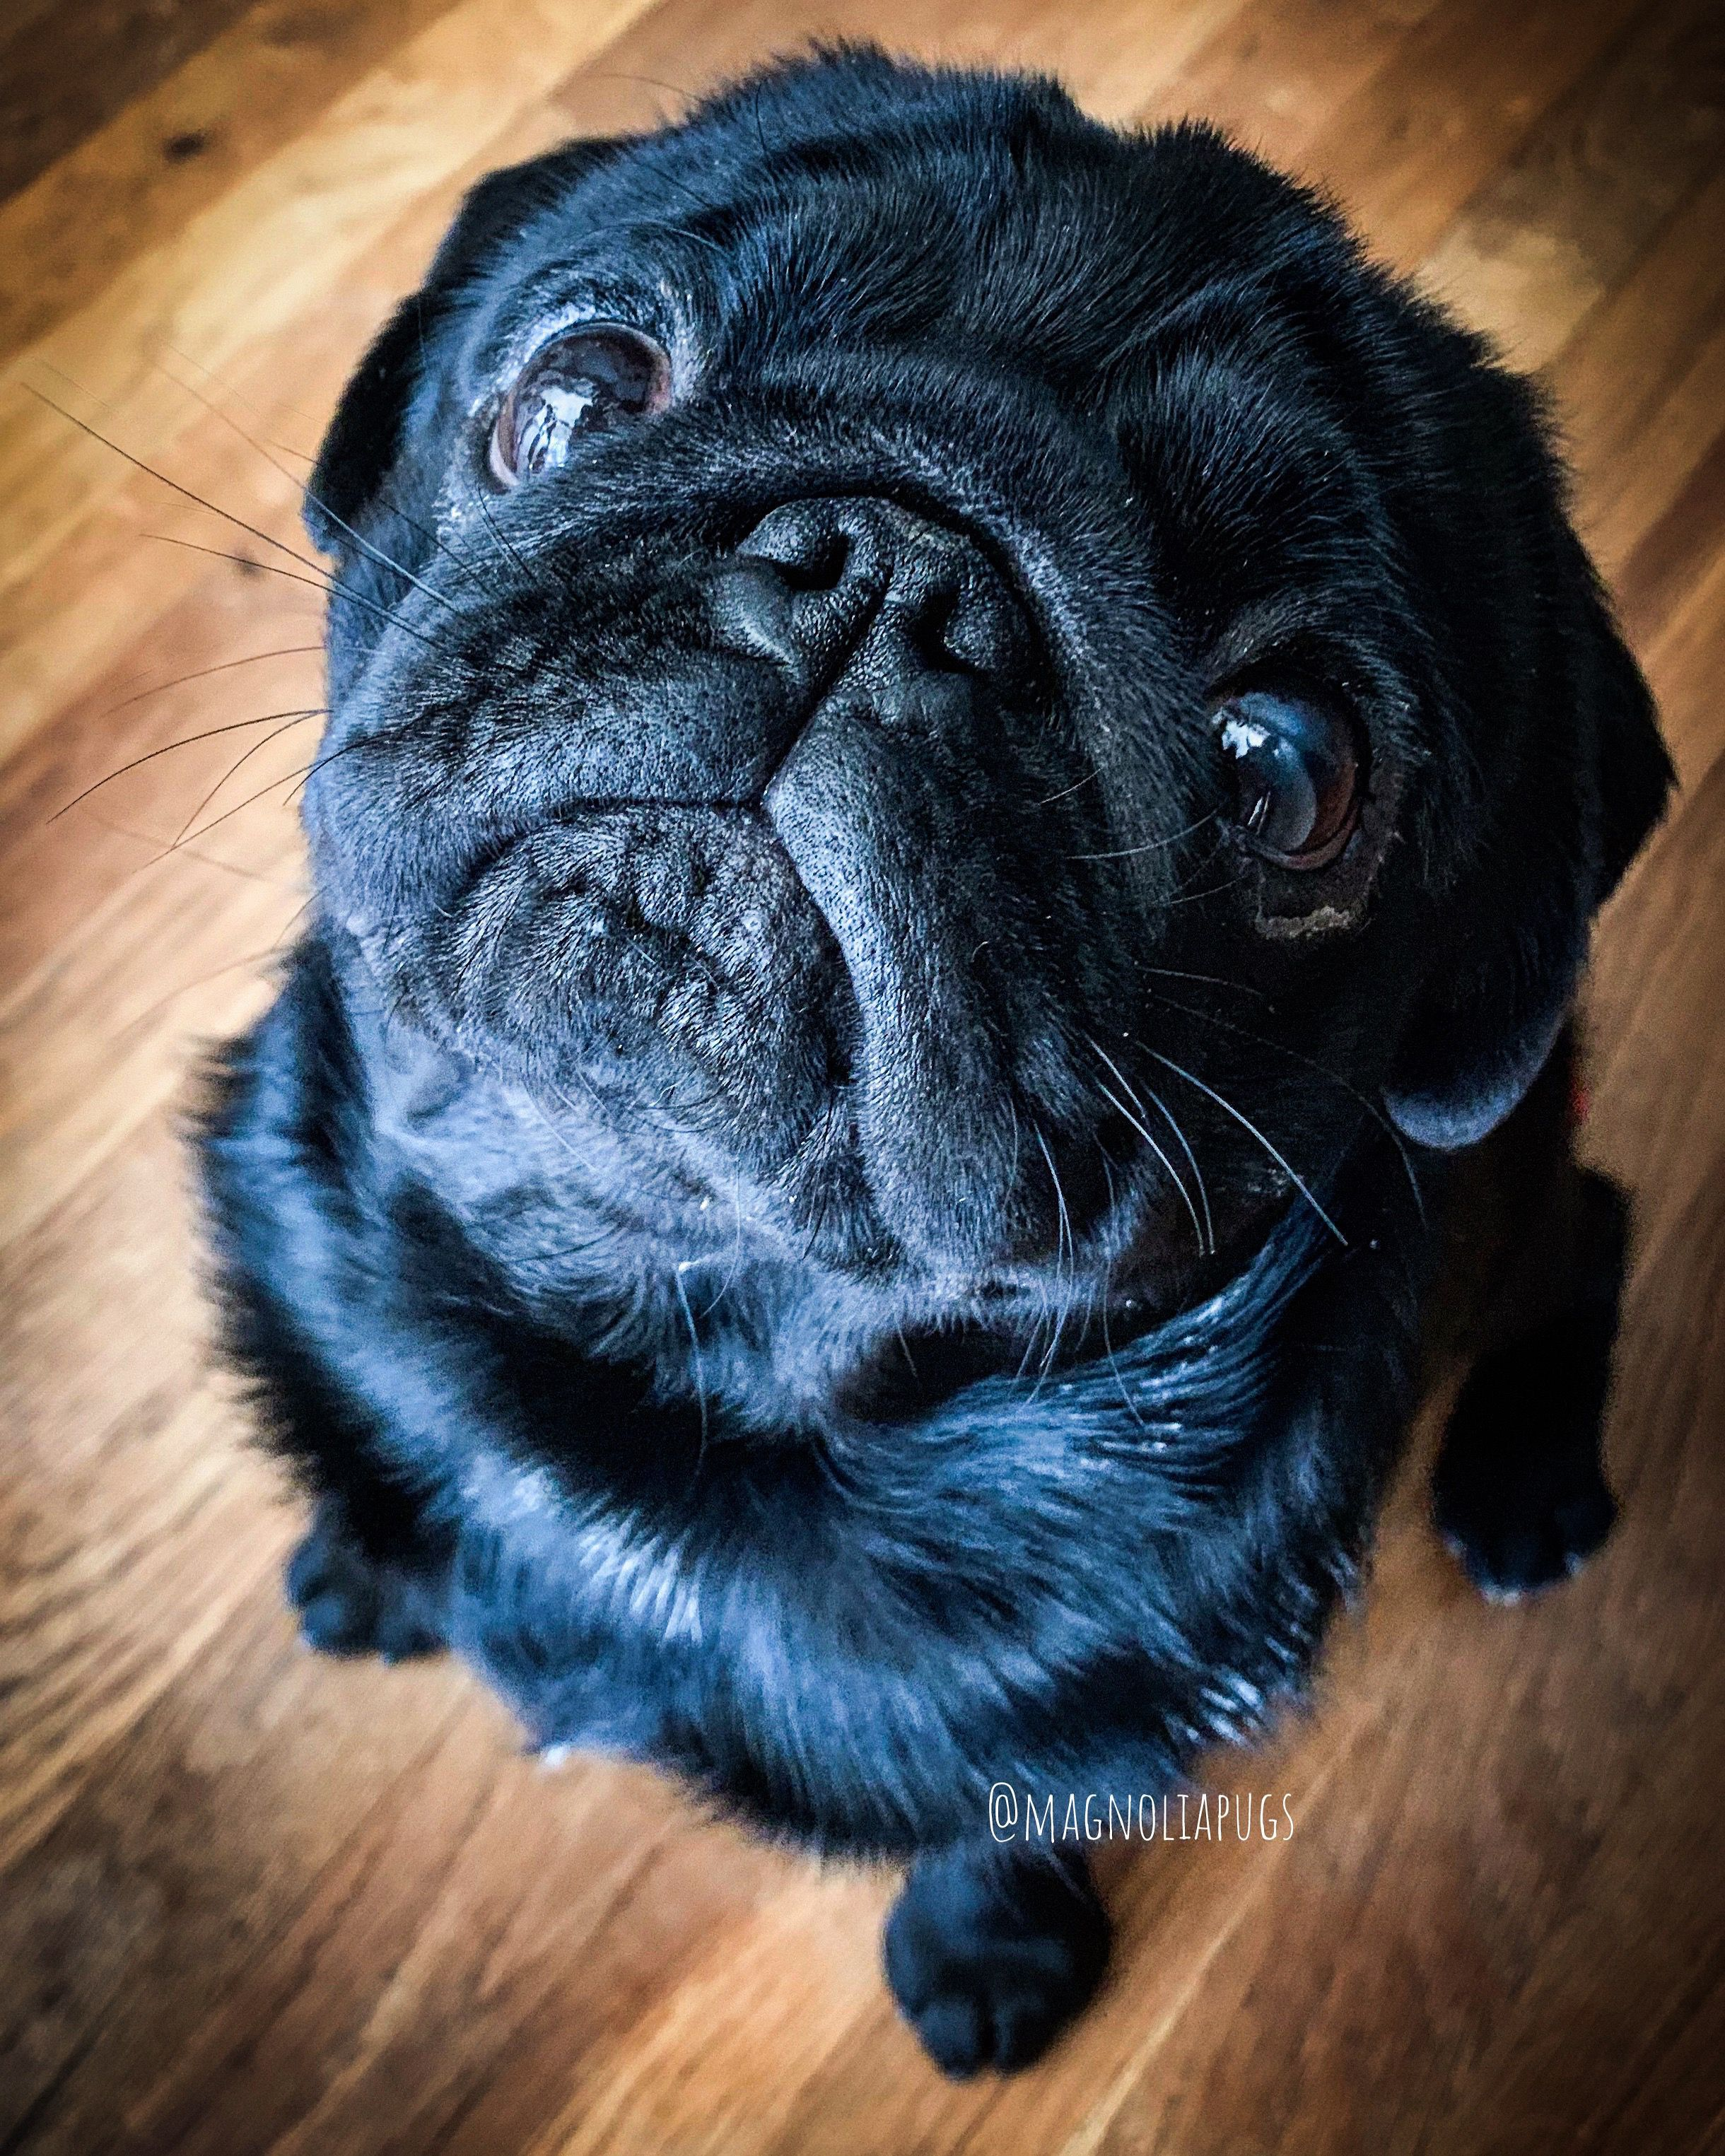 Pin By Nana Covington On Pugs Pugs And More Pugs French Bulldog